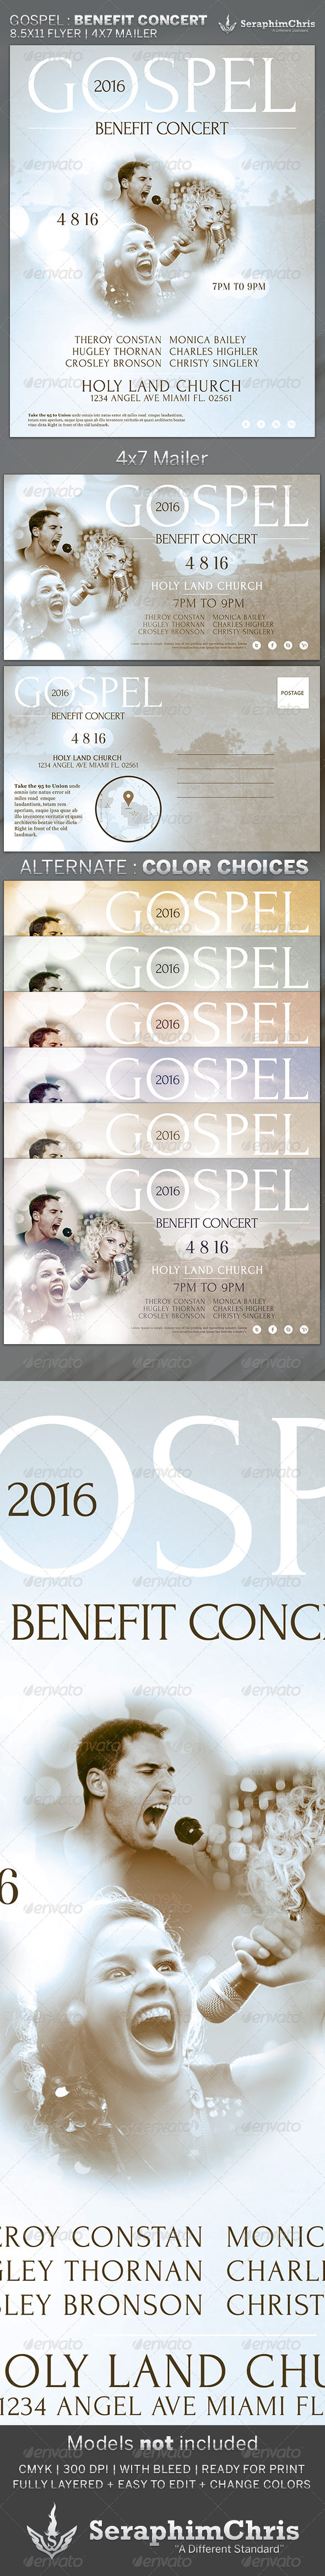 Gospel: Benefit Concert Church Flyer Template - Church Flyers